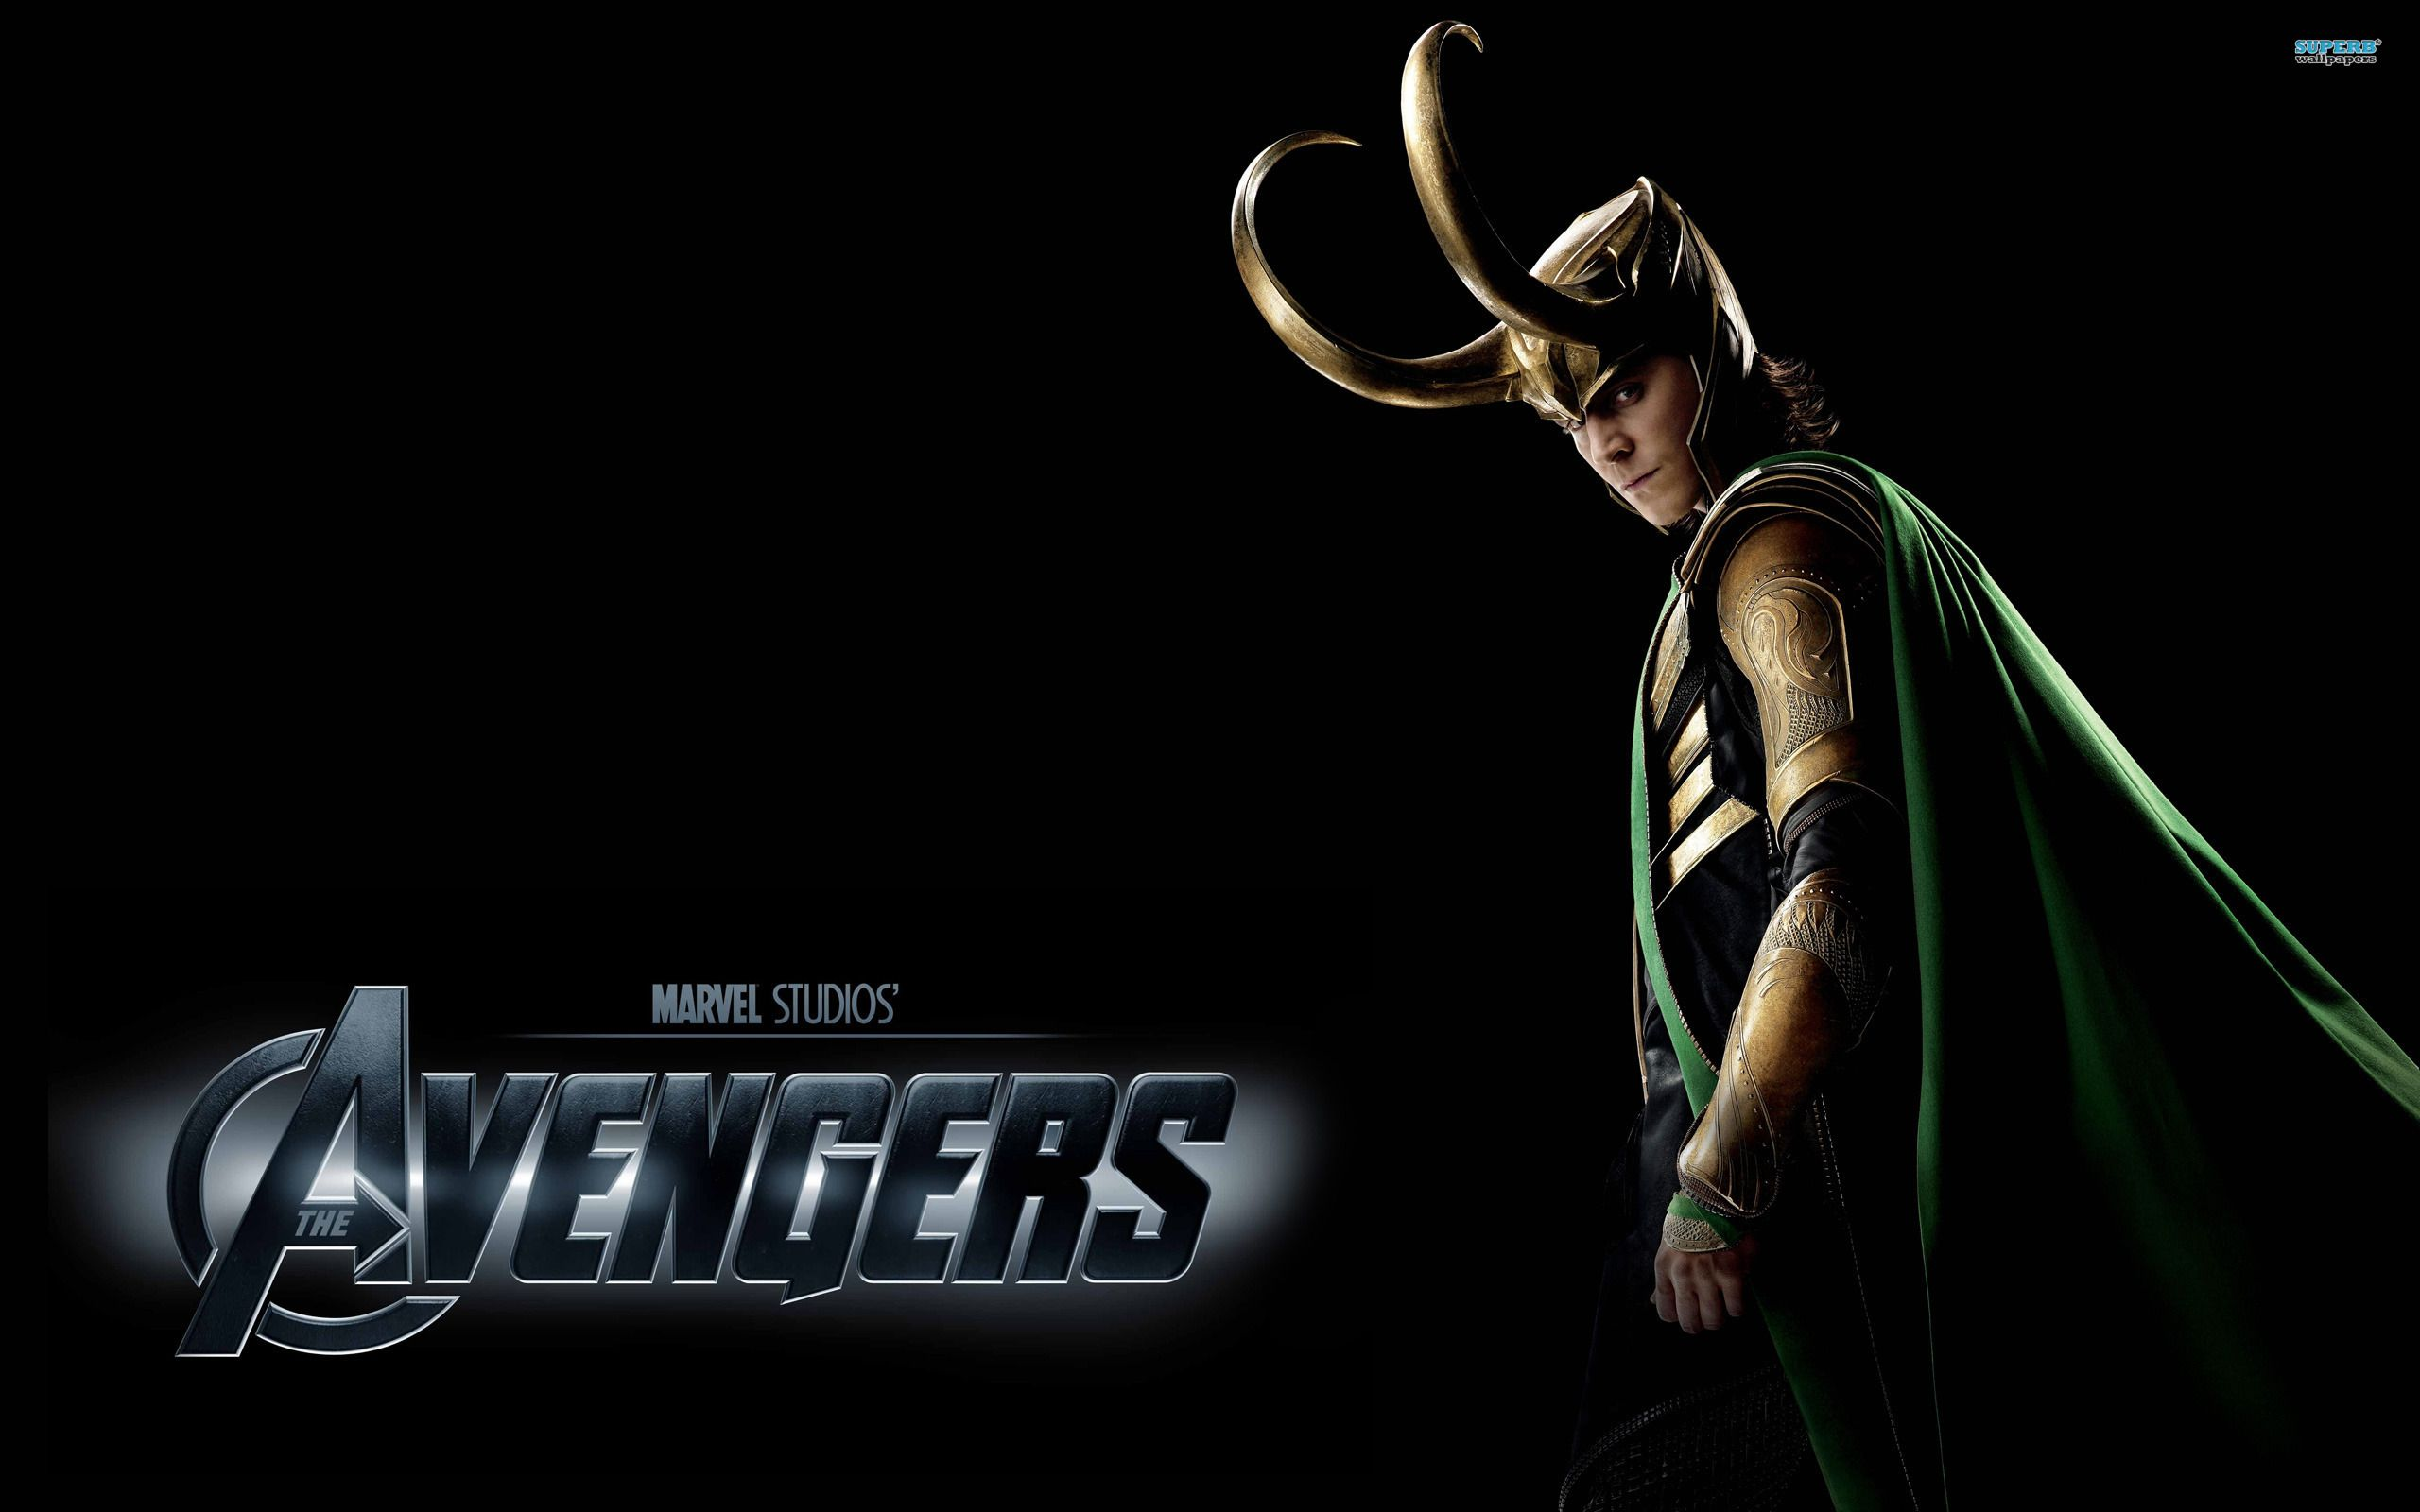 Lavengers The Avengers Villain Lhd Wallpapers Avengers Character Wallpapers